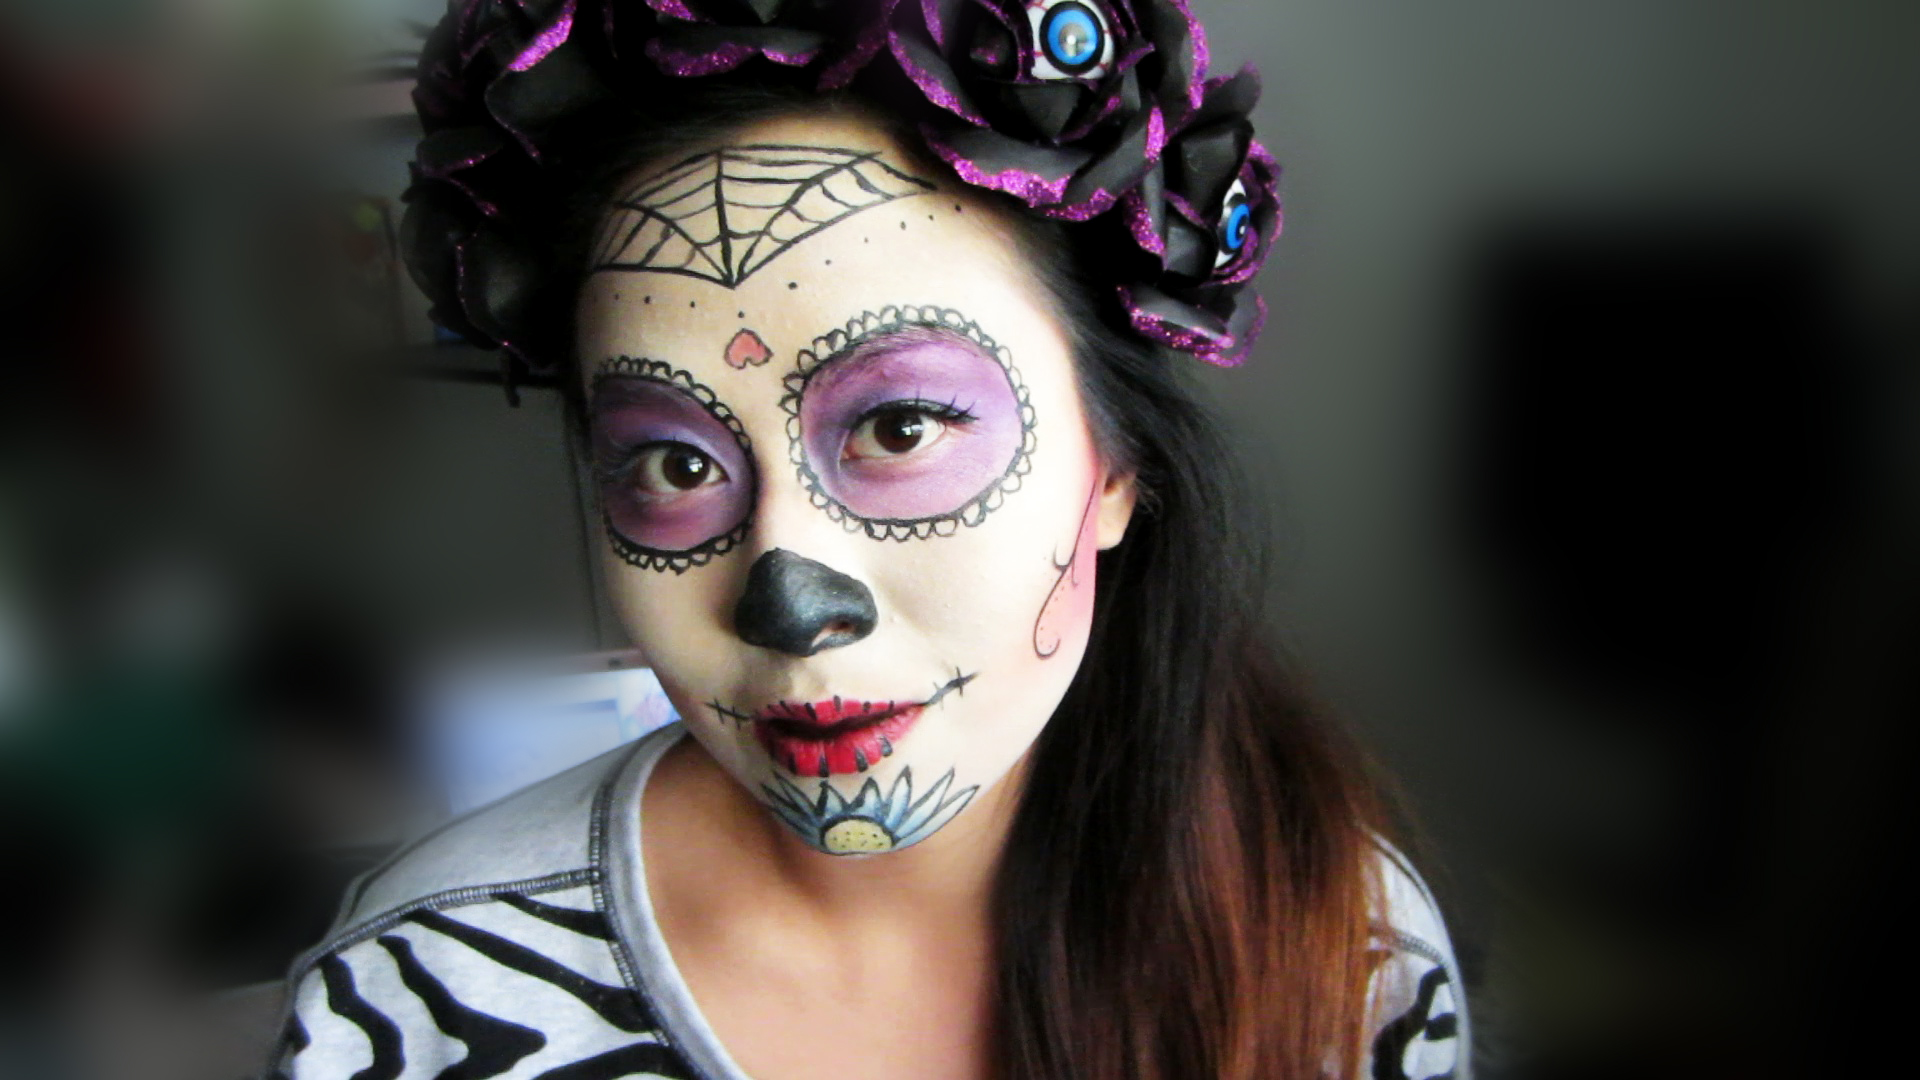 Picture of Sugar Skull Headband and Makeup